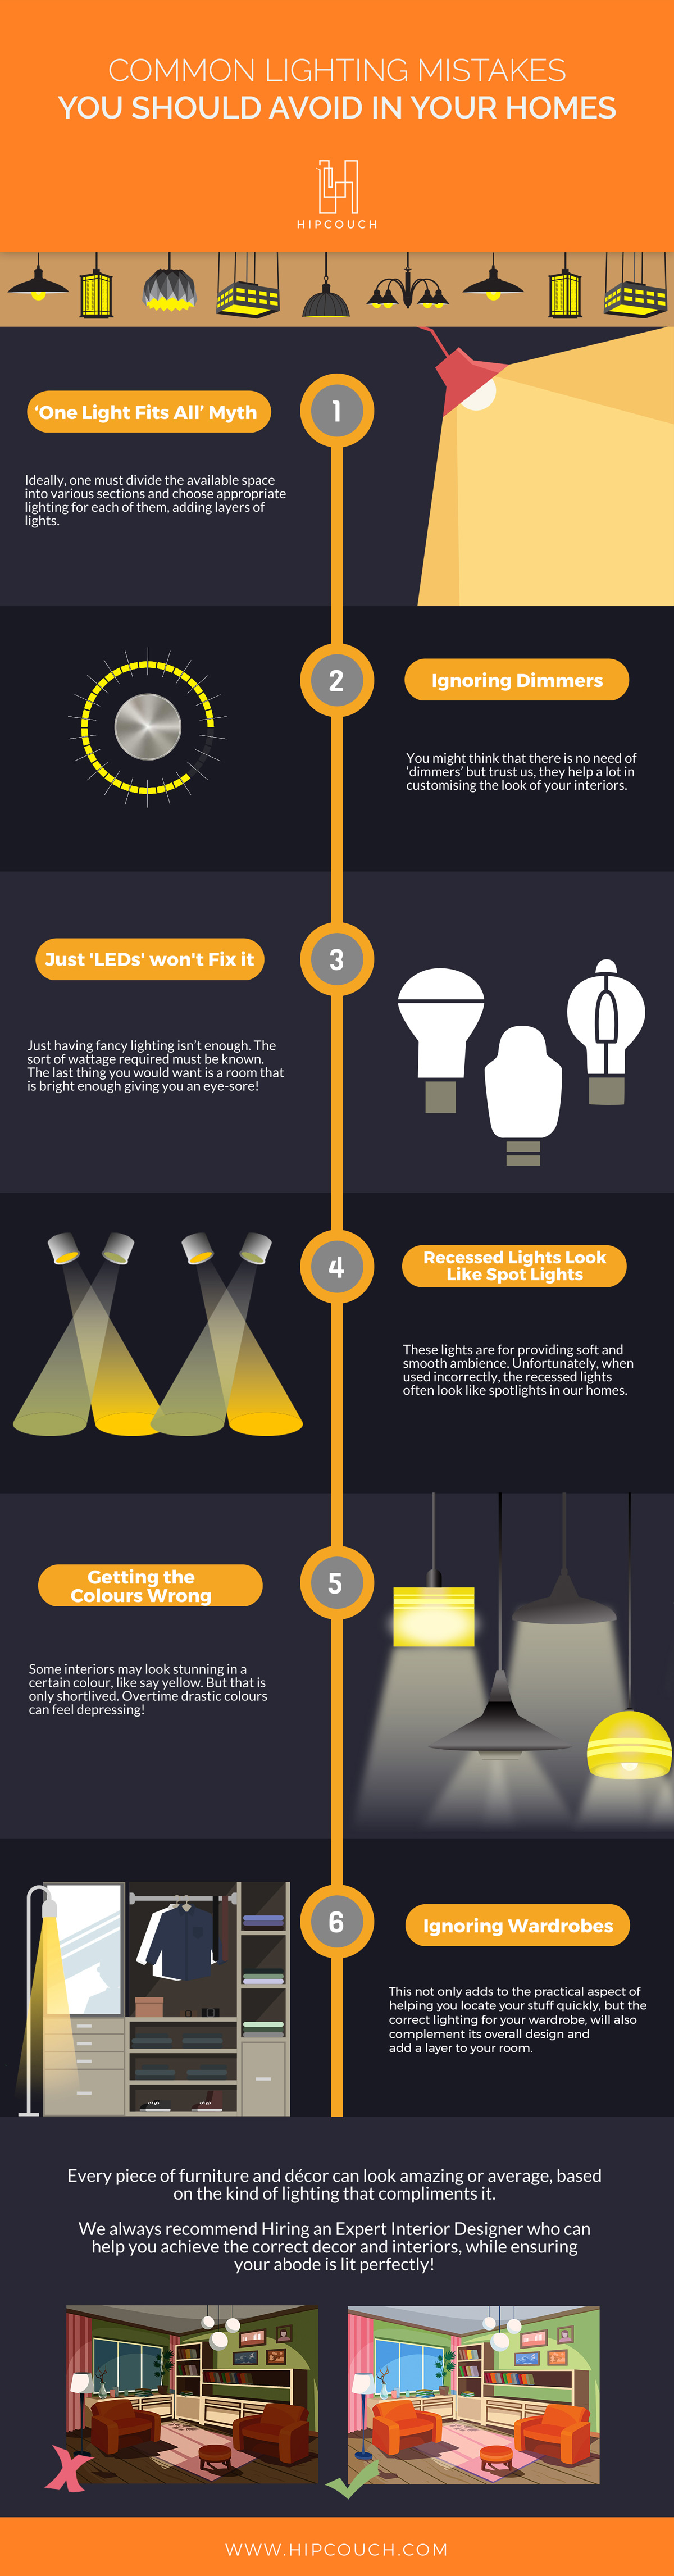 Common Lighting Mistakes to avoid for your Home Interiors